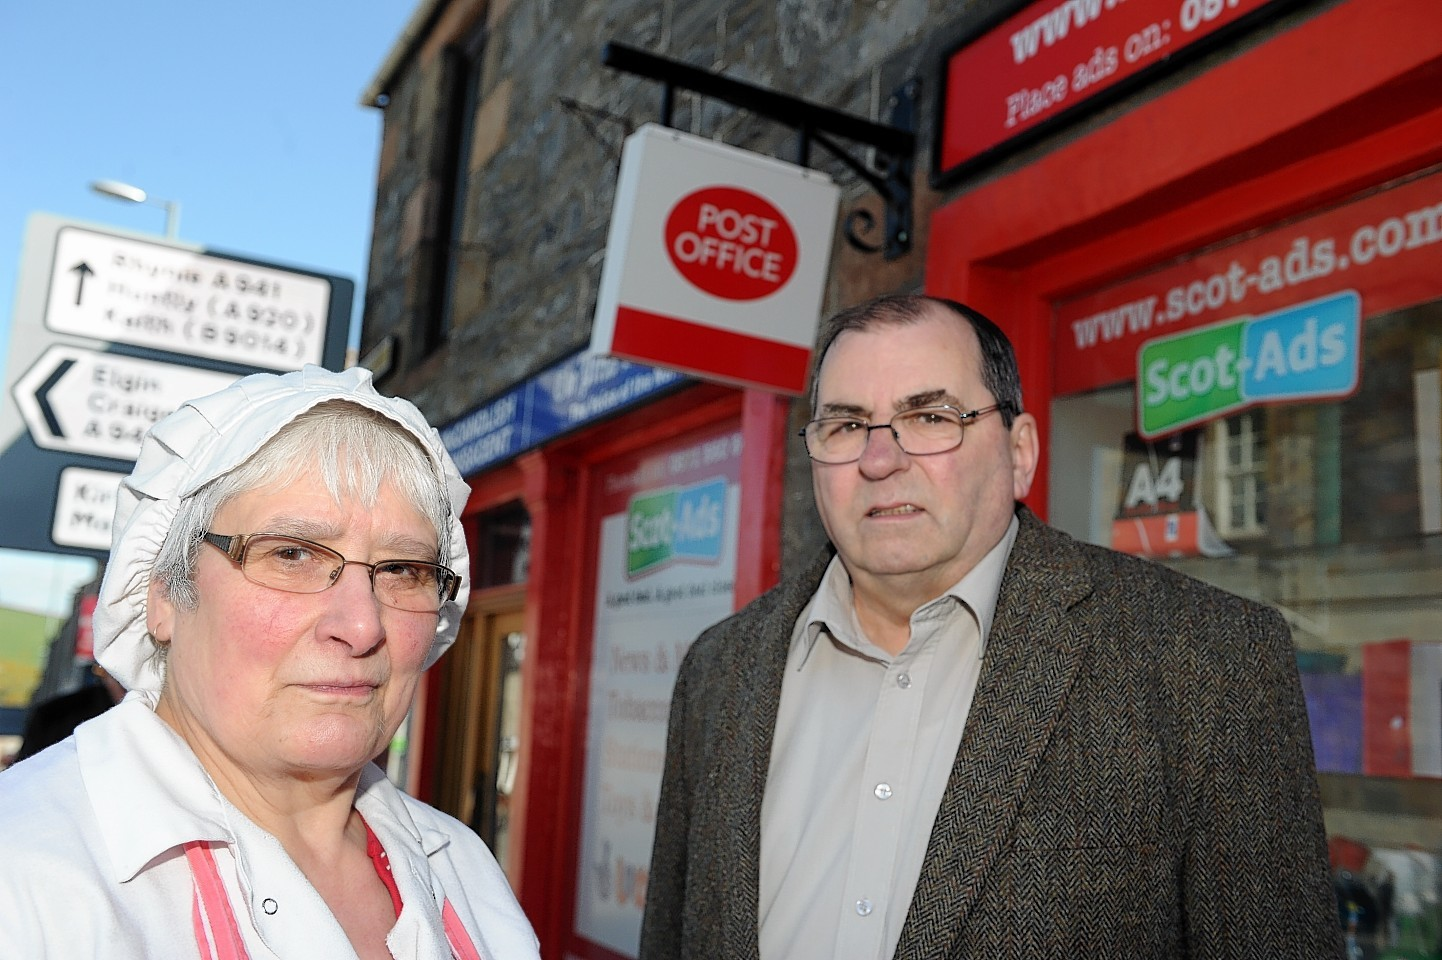 Bunty Campbell, left, chairman of Dufftown Community Council, and Moray councillor Mike McConnachie, right, outside Dufftown Post Office which closed suddenly. Picture by Gordon Lennox